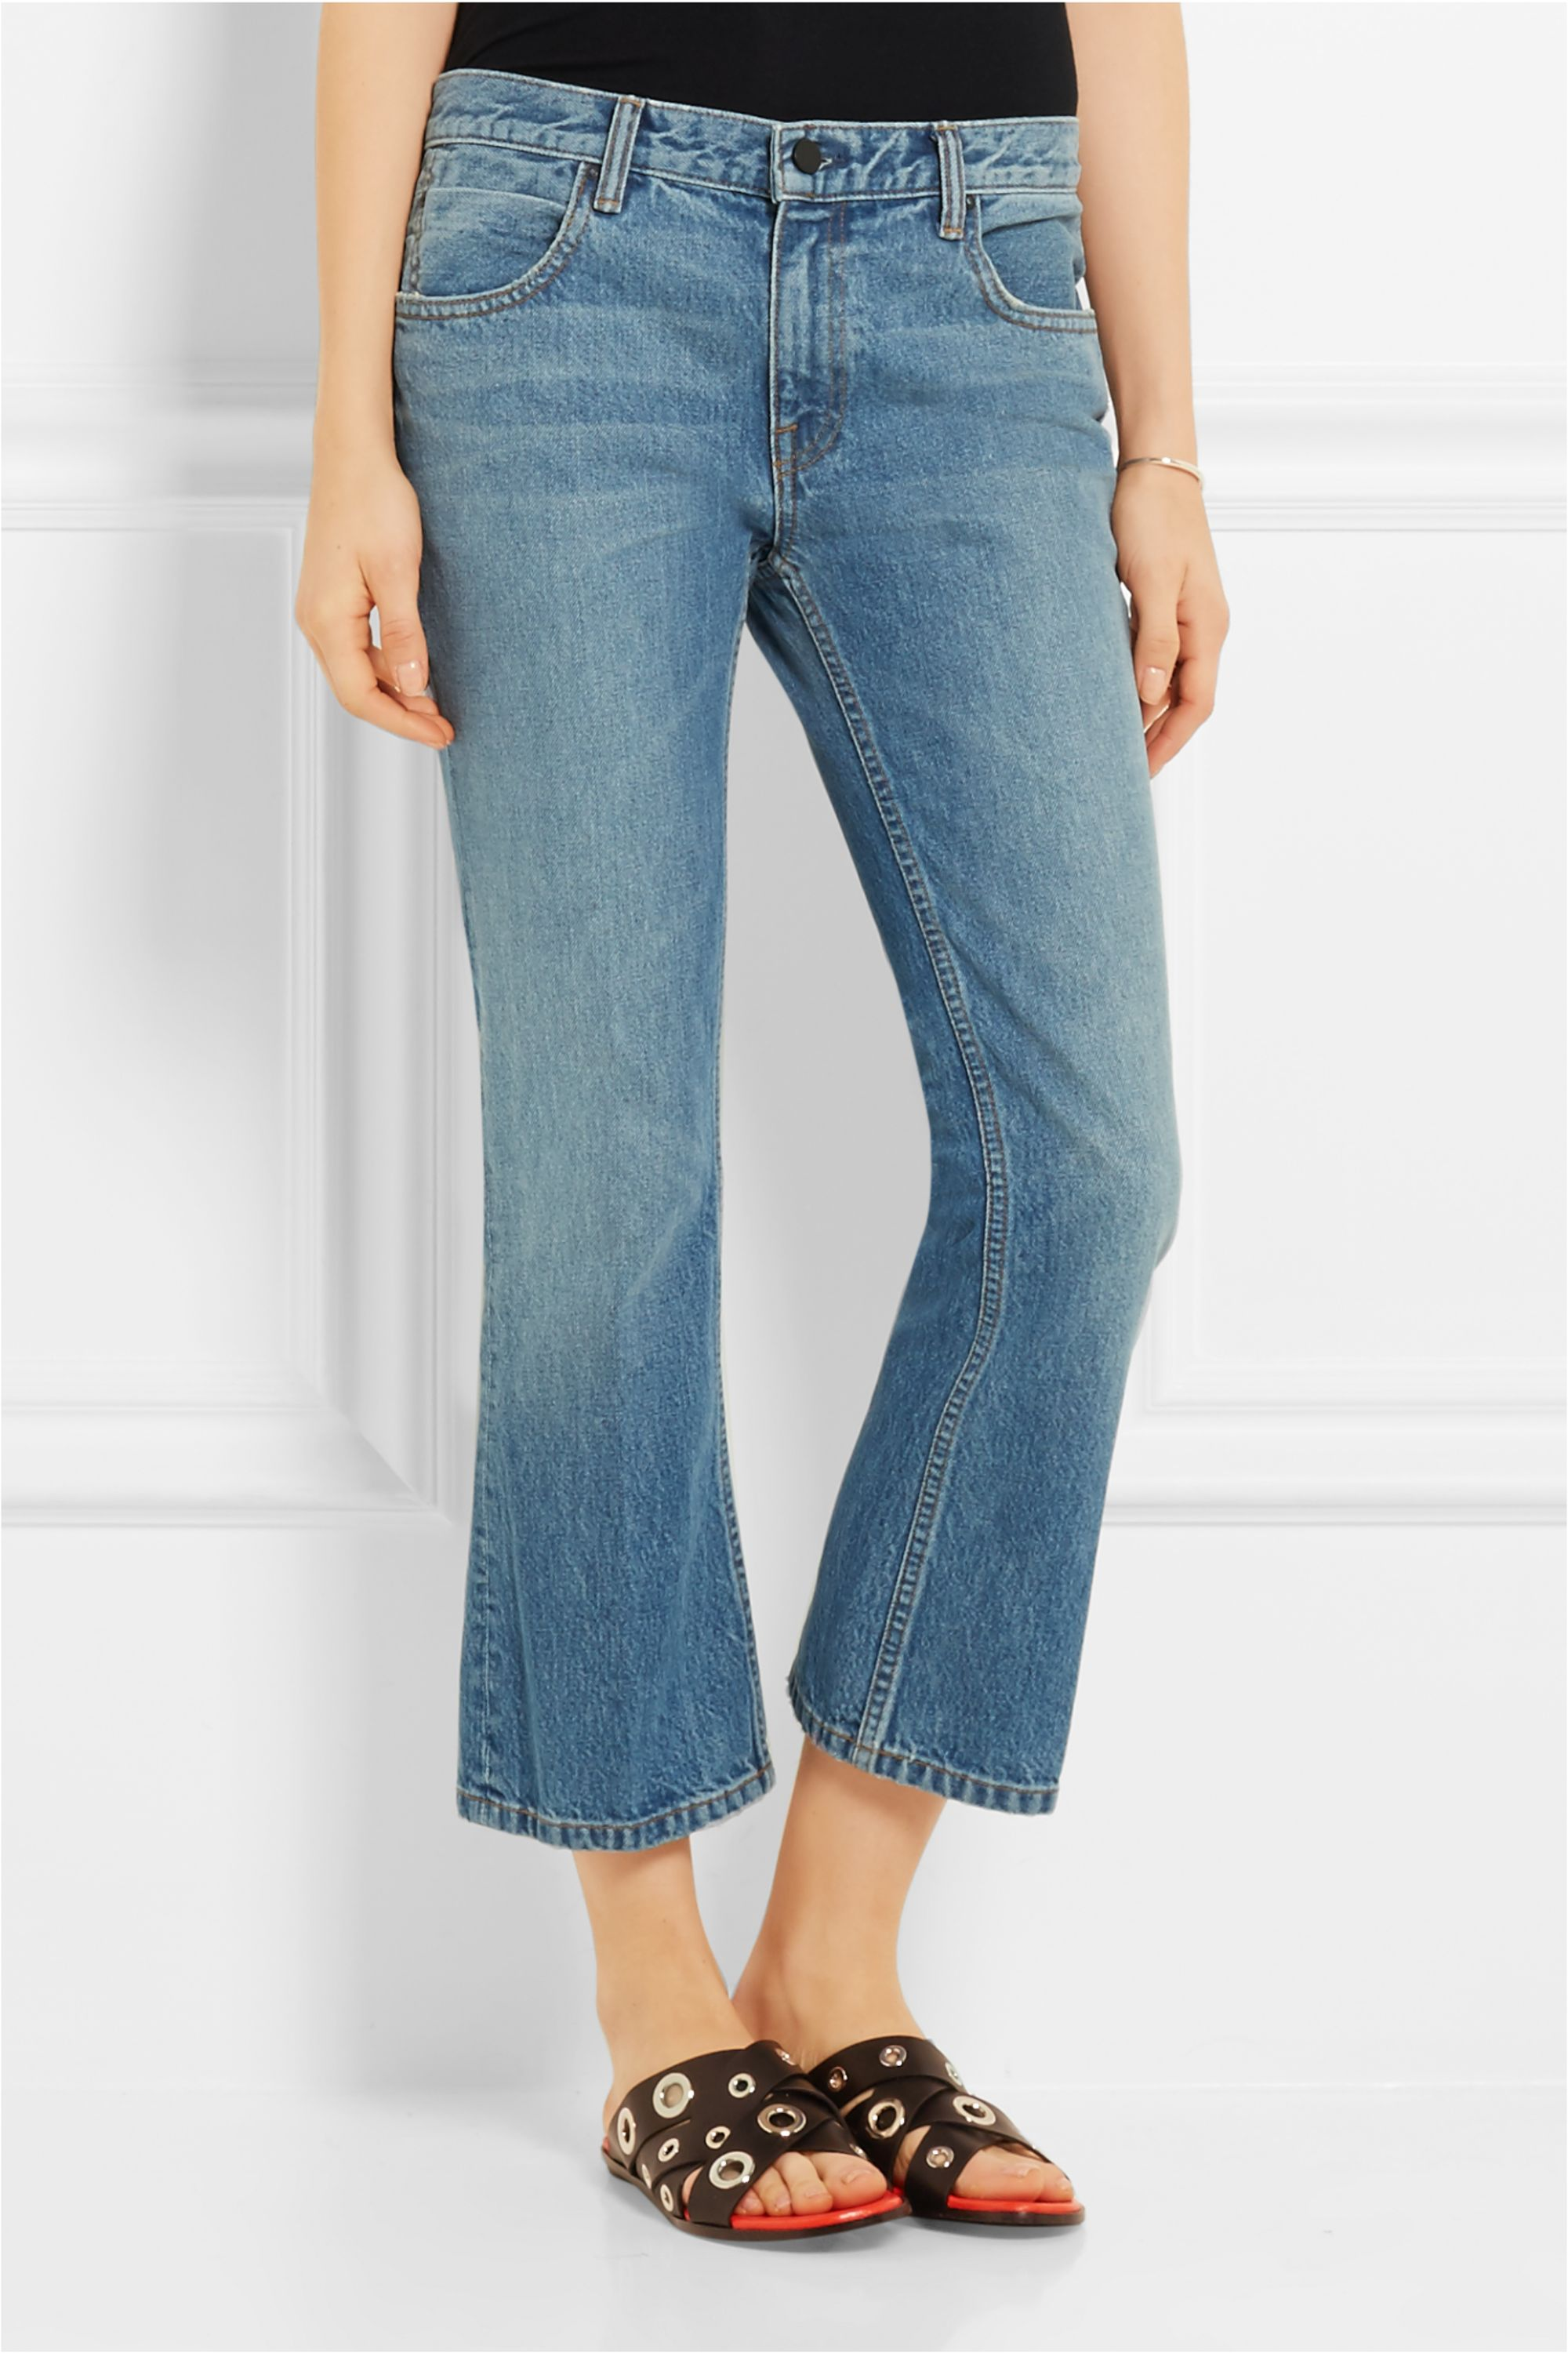 Alexander Wang Cropped mid-rise bootcut jeans